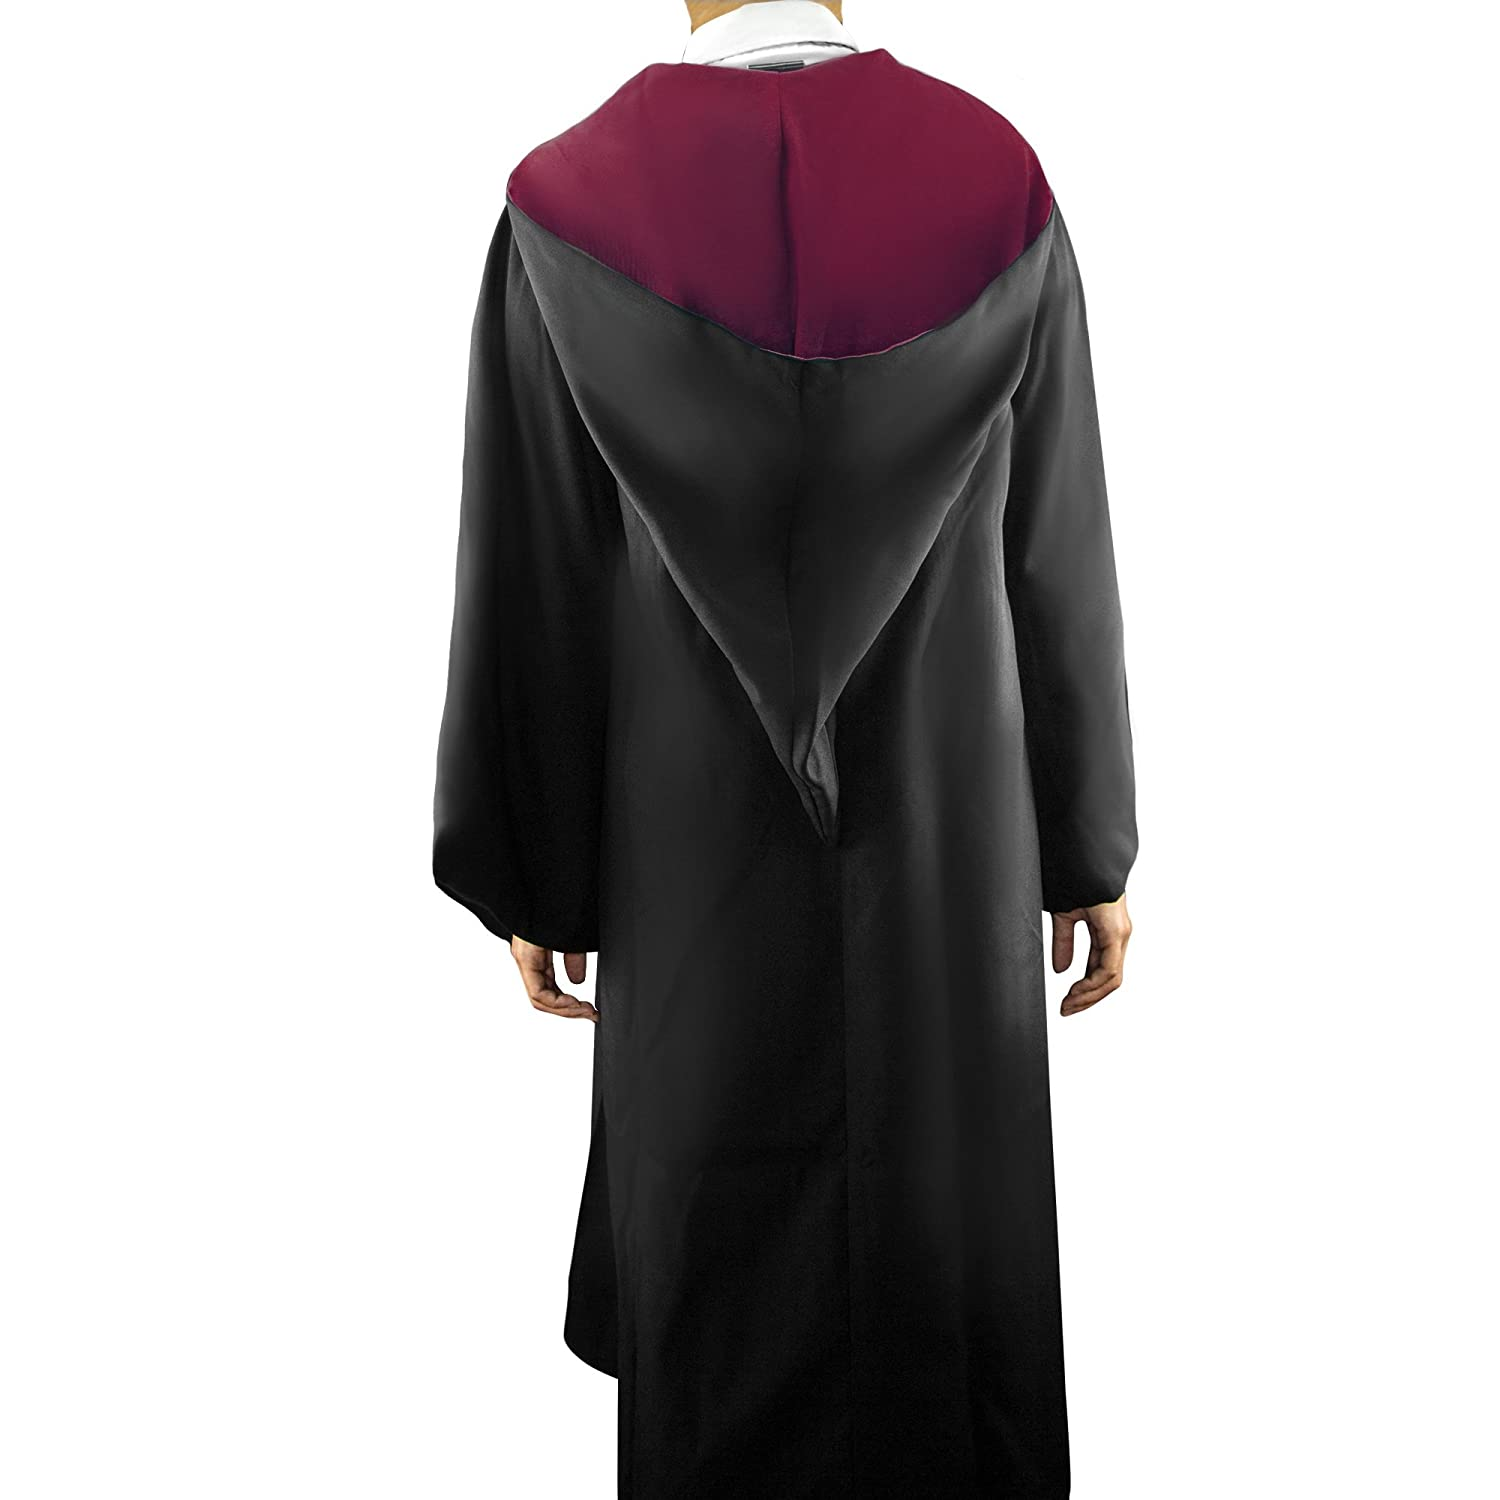 Amazon.com: Harry Potter Authentic Tailored Wizard Robes Cloak by ...